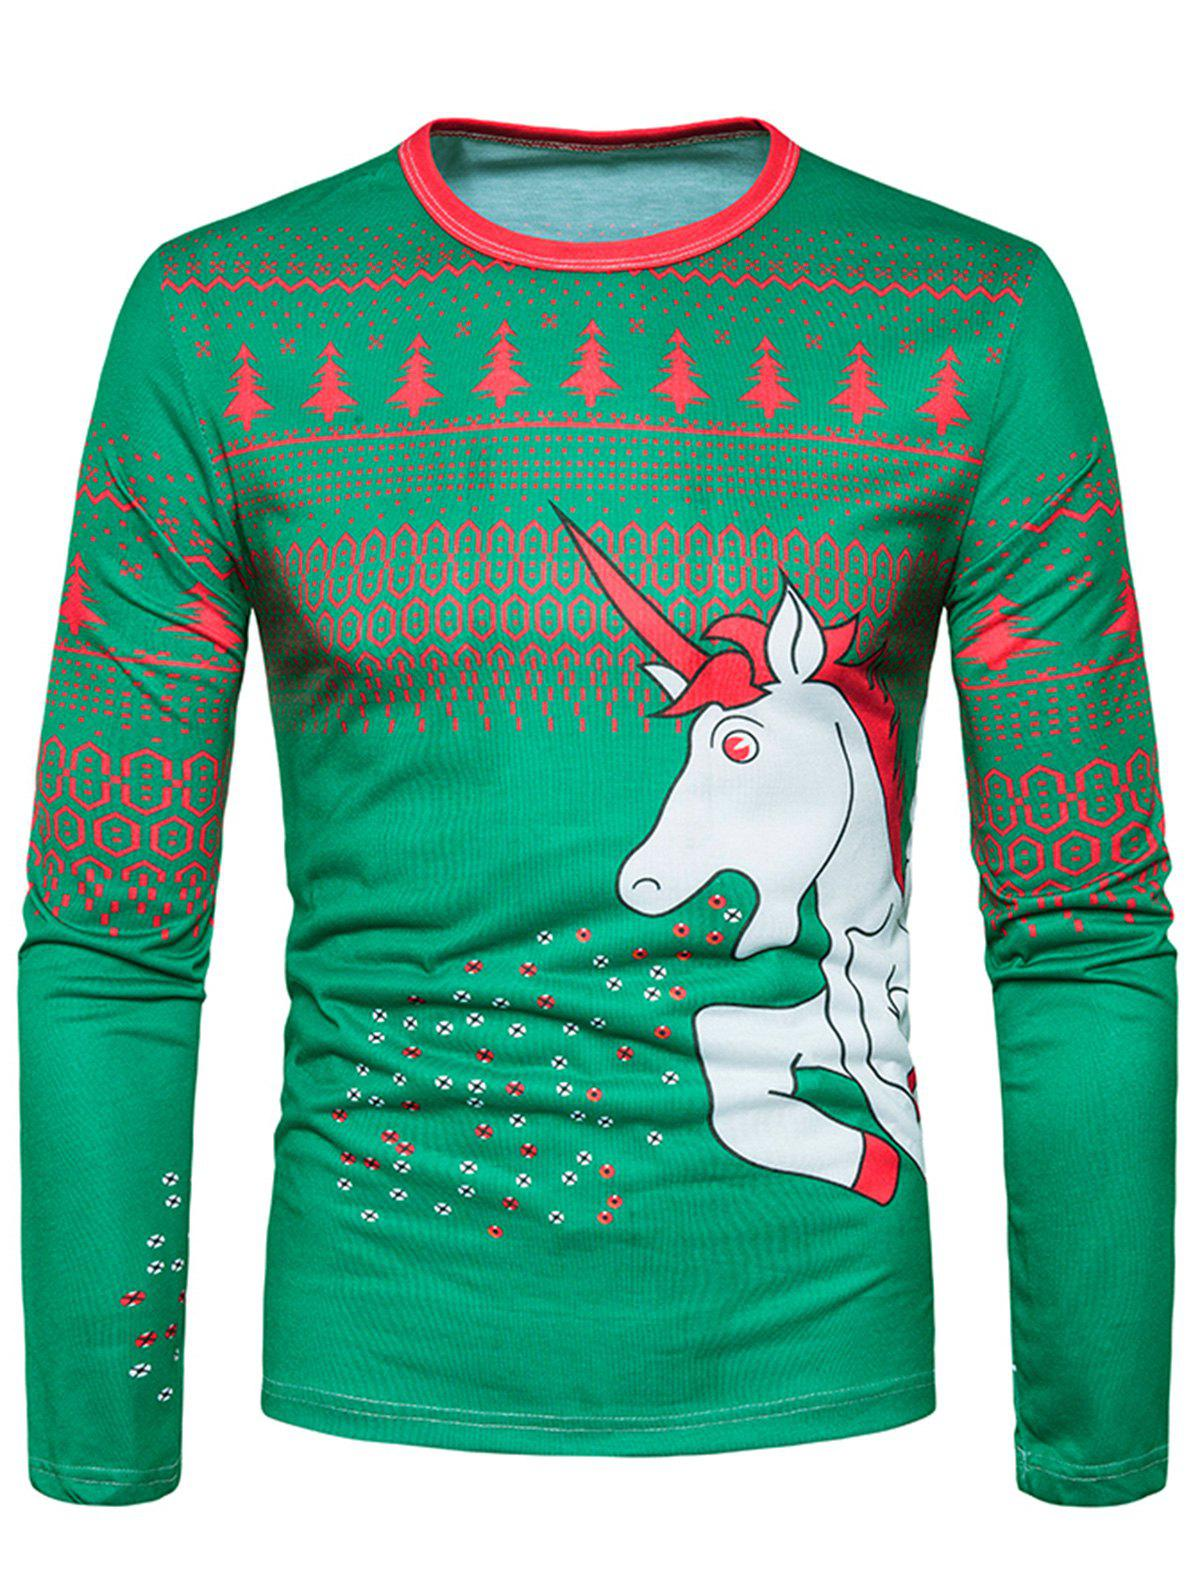 Chic 3D Unicorn Geometric Print Christmas T-shirt